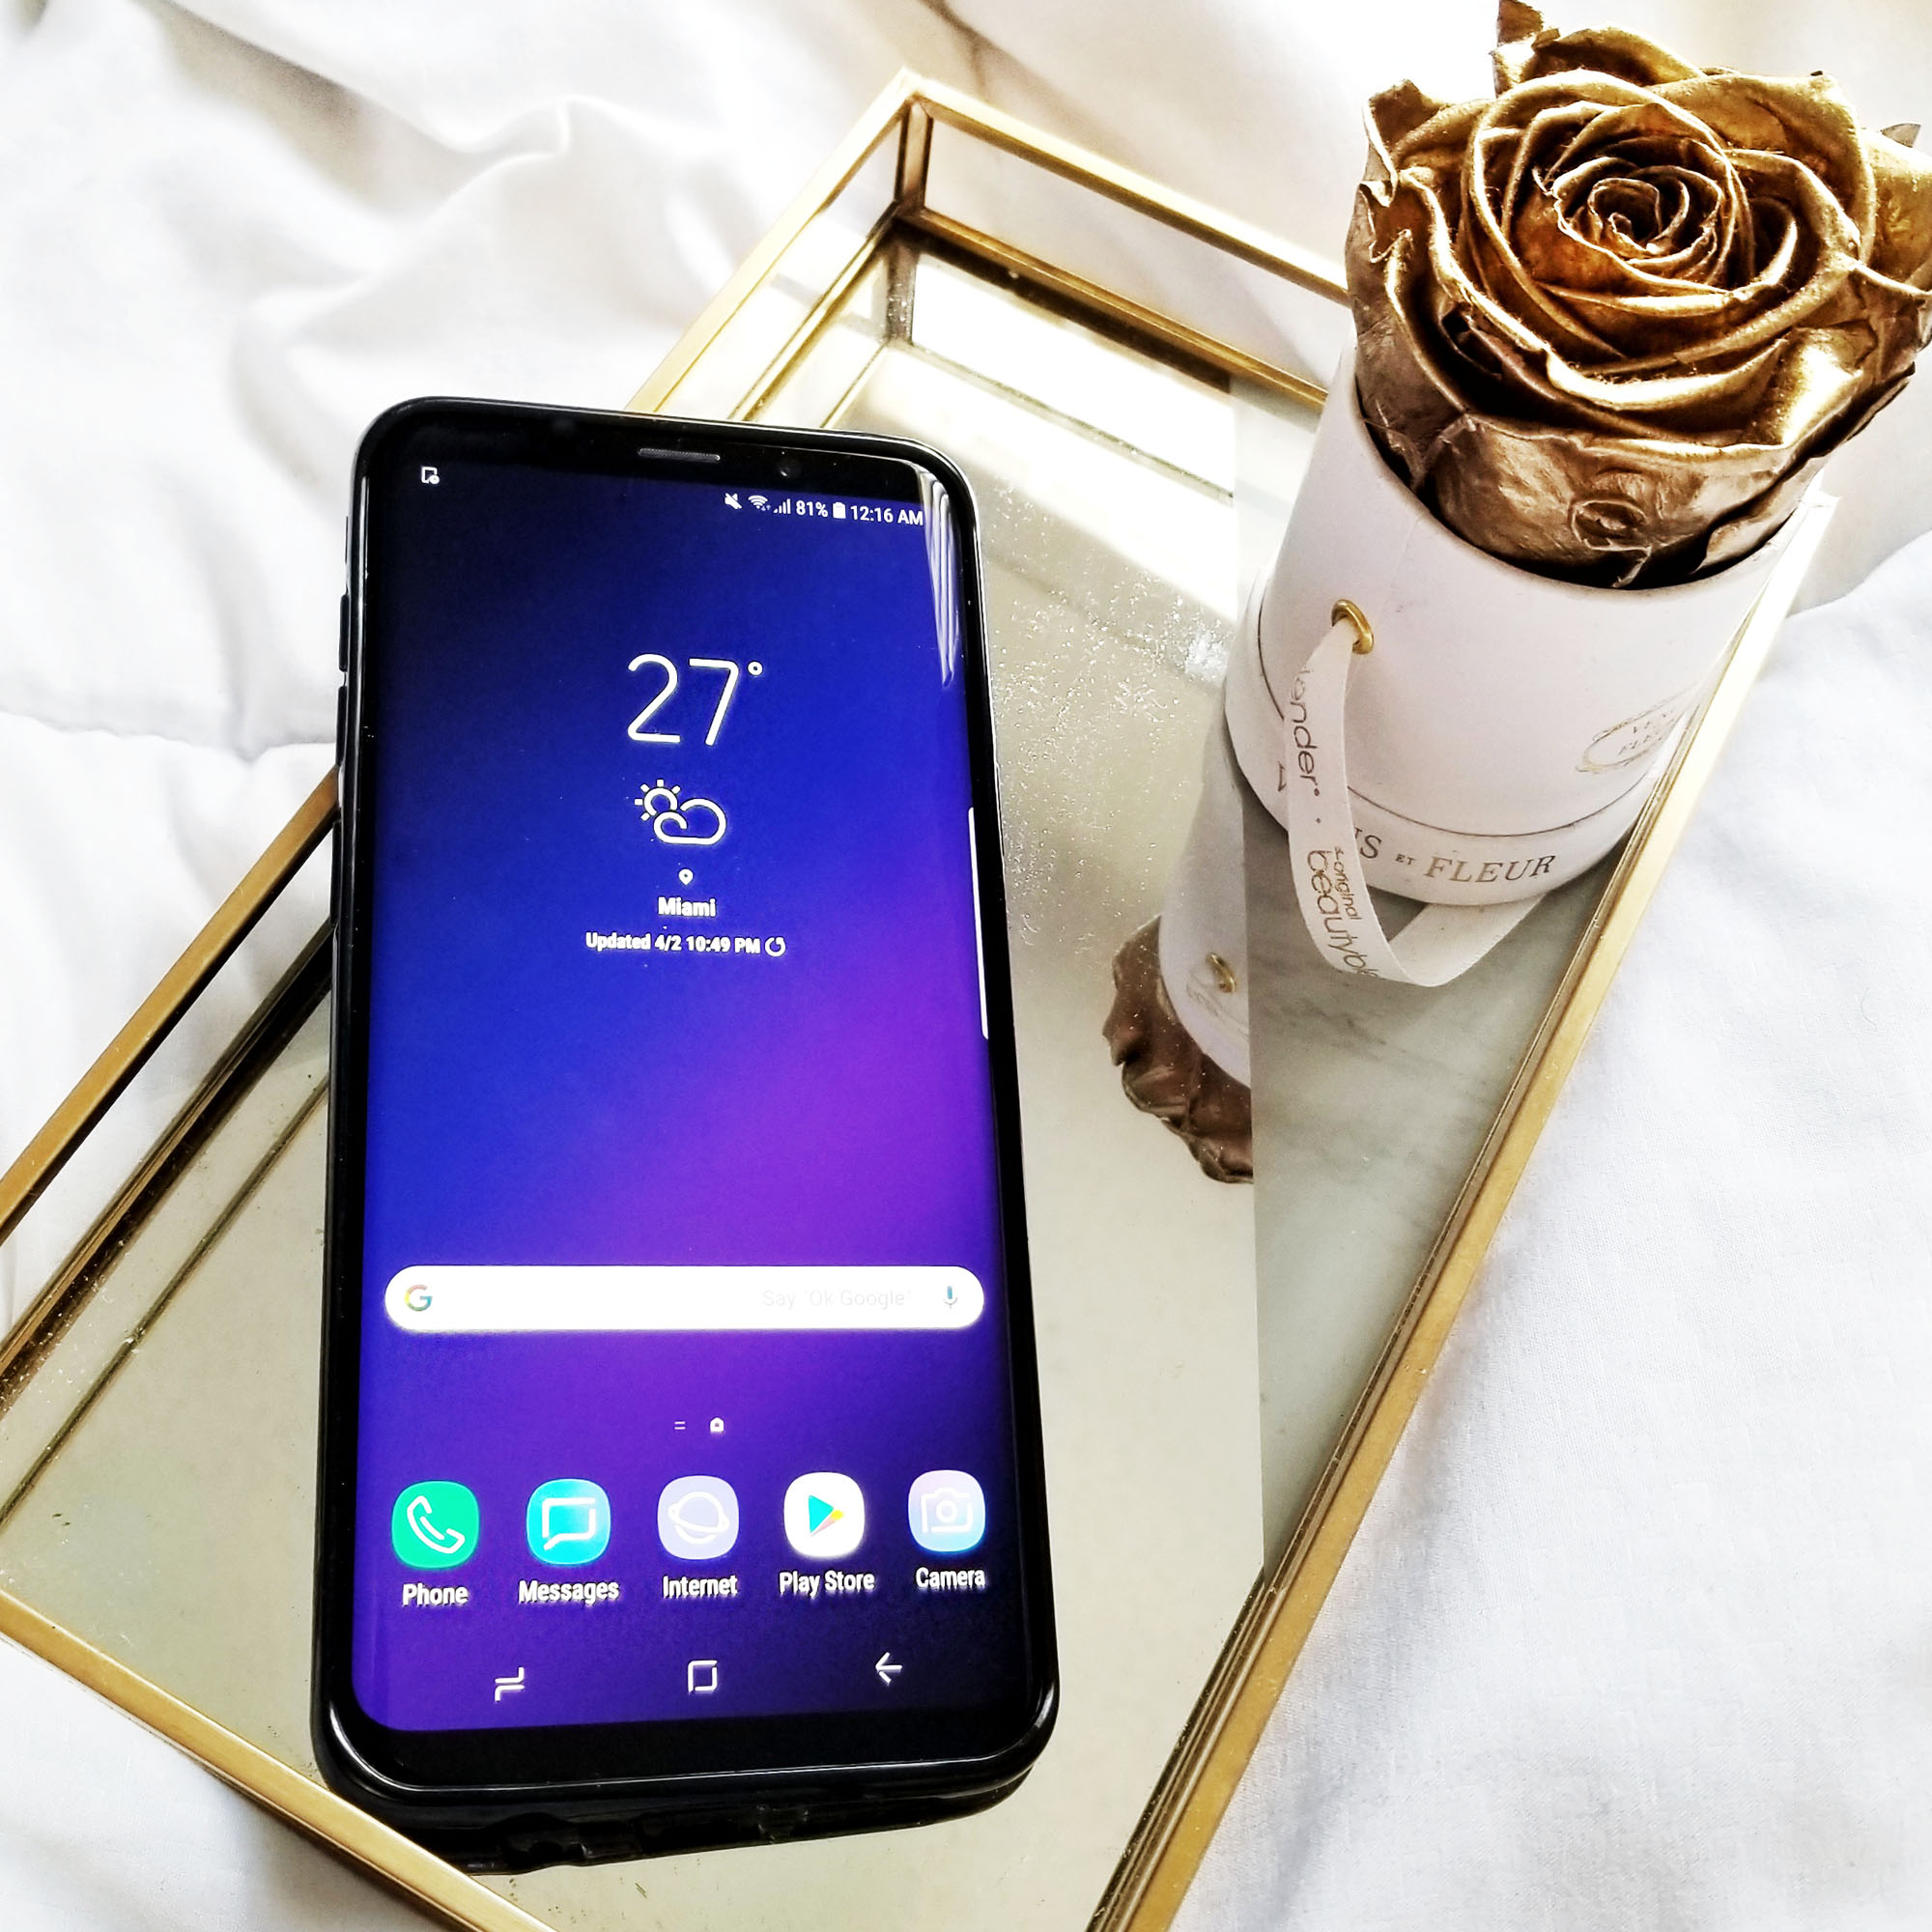 Galaxy Galaxy S9+ For Bloggers